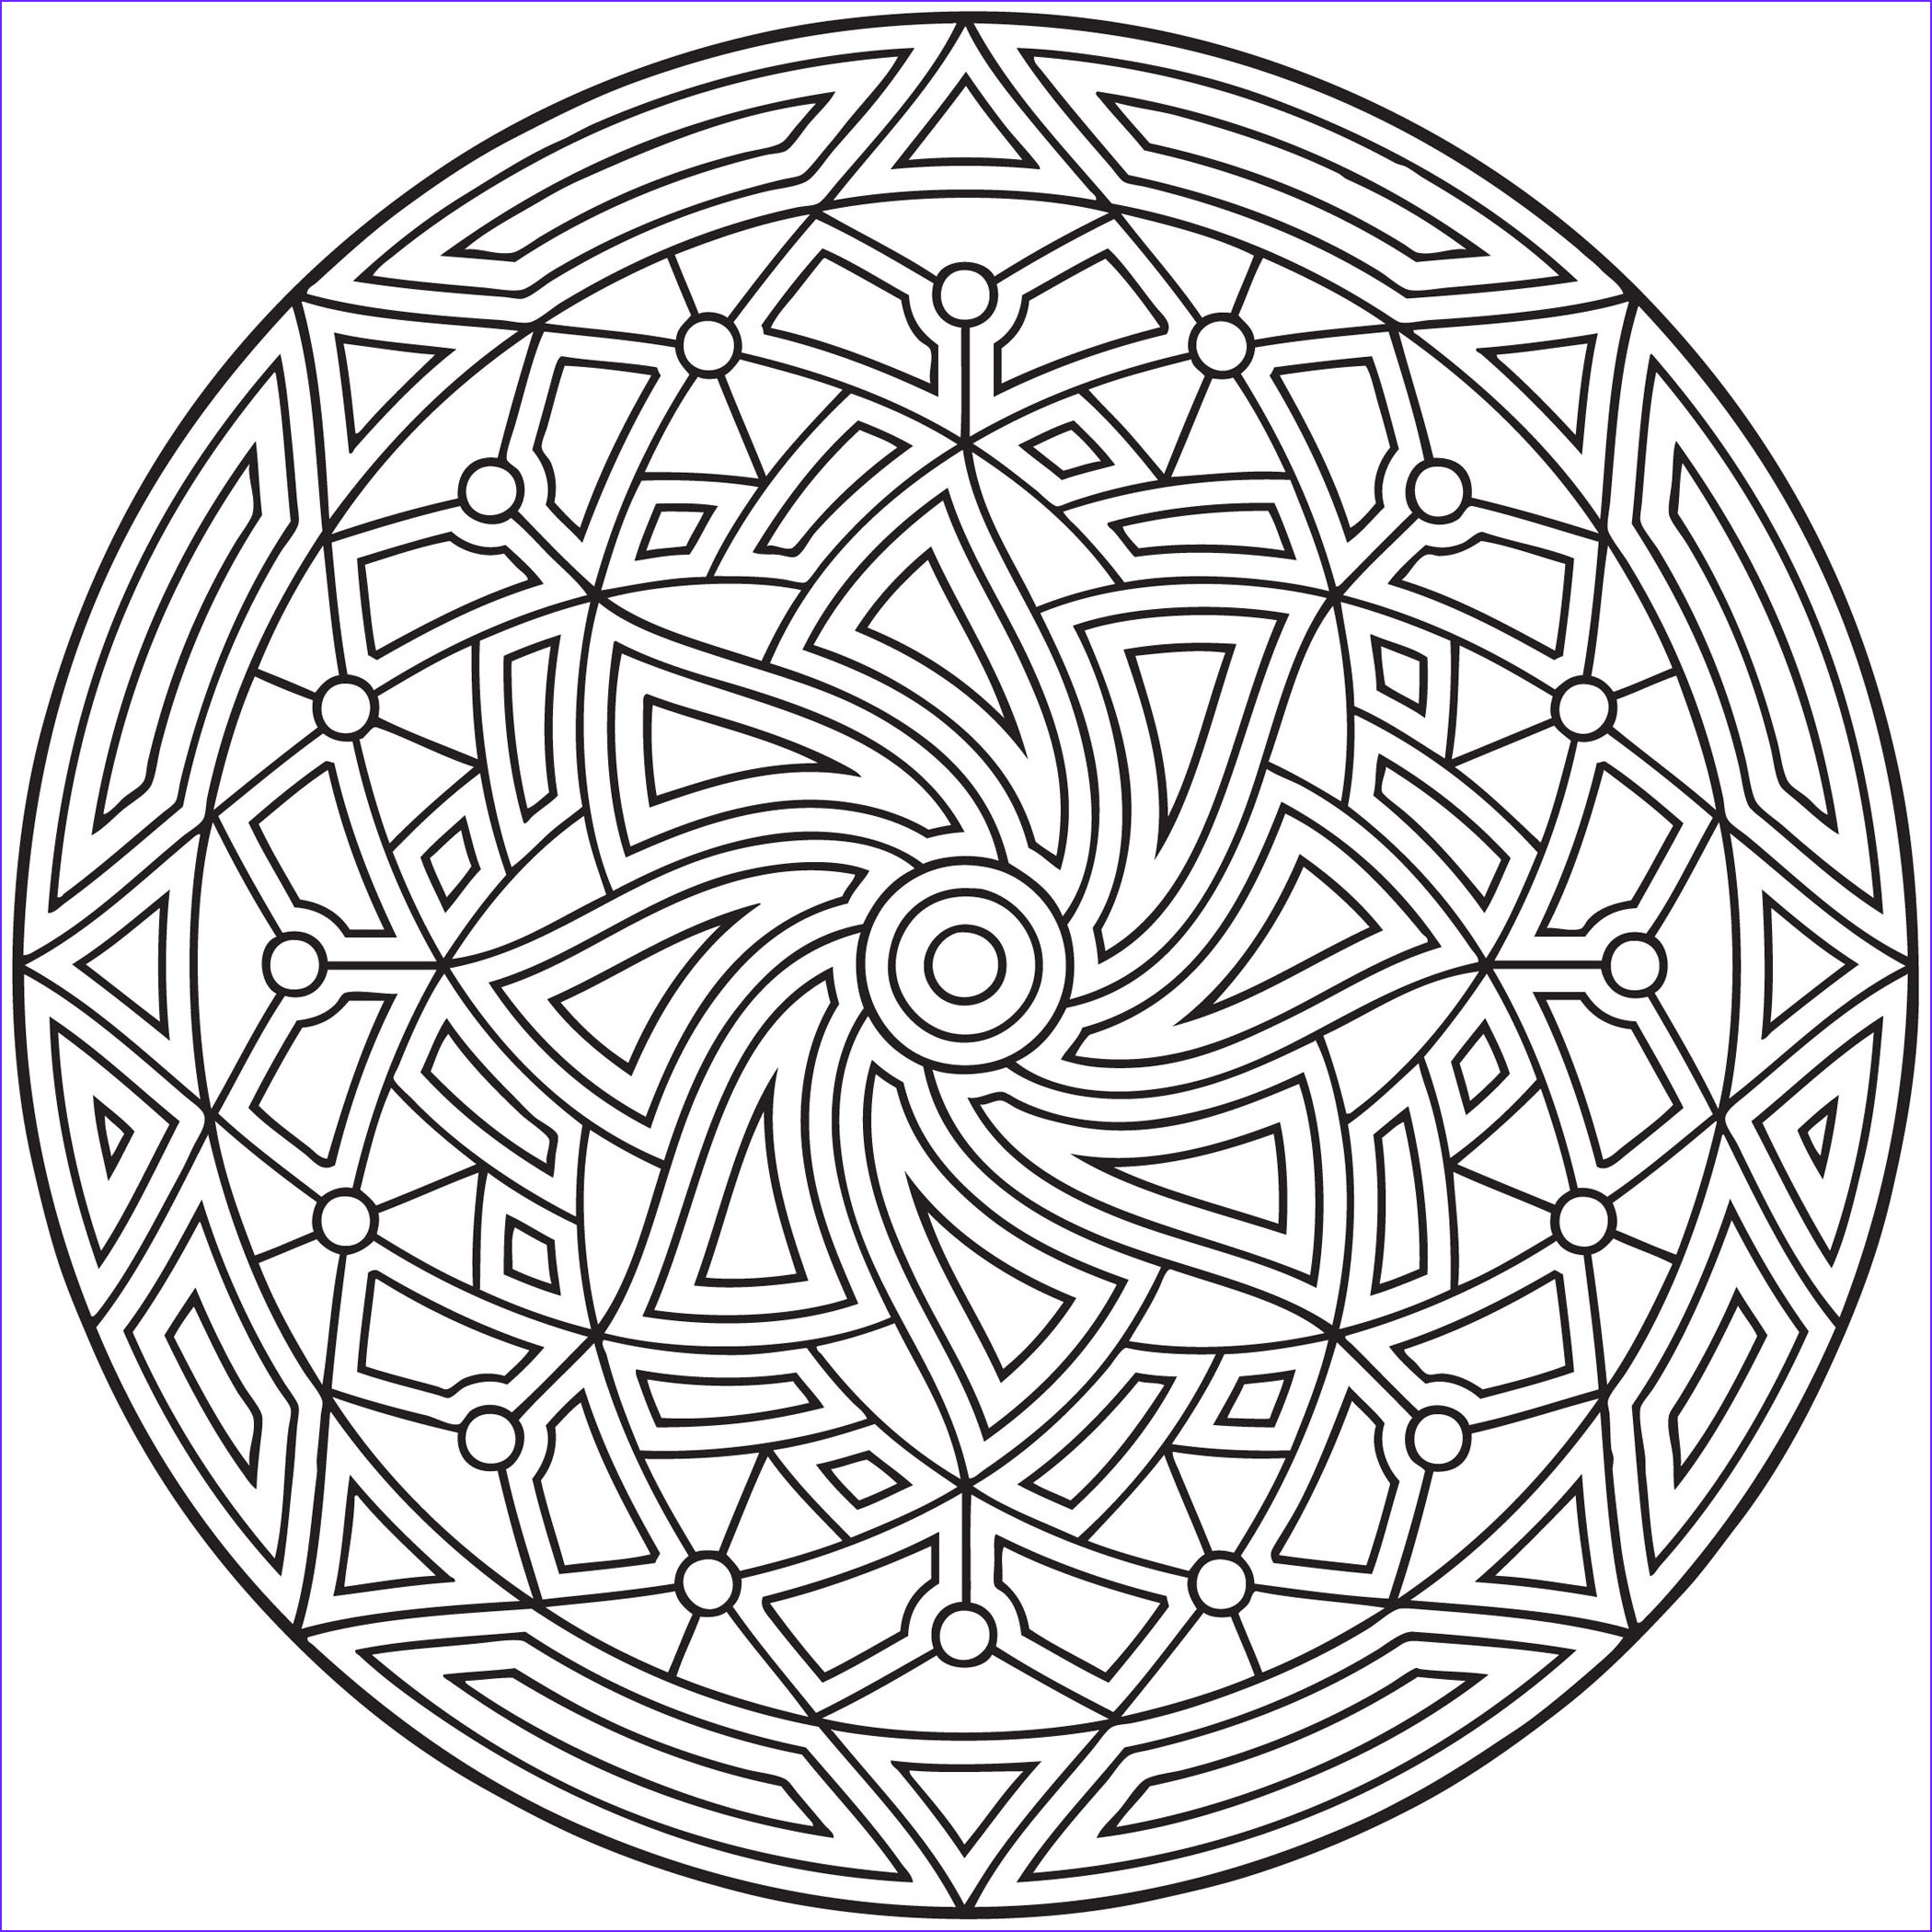 Coloring Pages Designs Luxury Collection Free Printable Geometric Coloring Pages for Kids